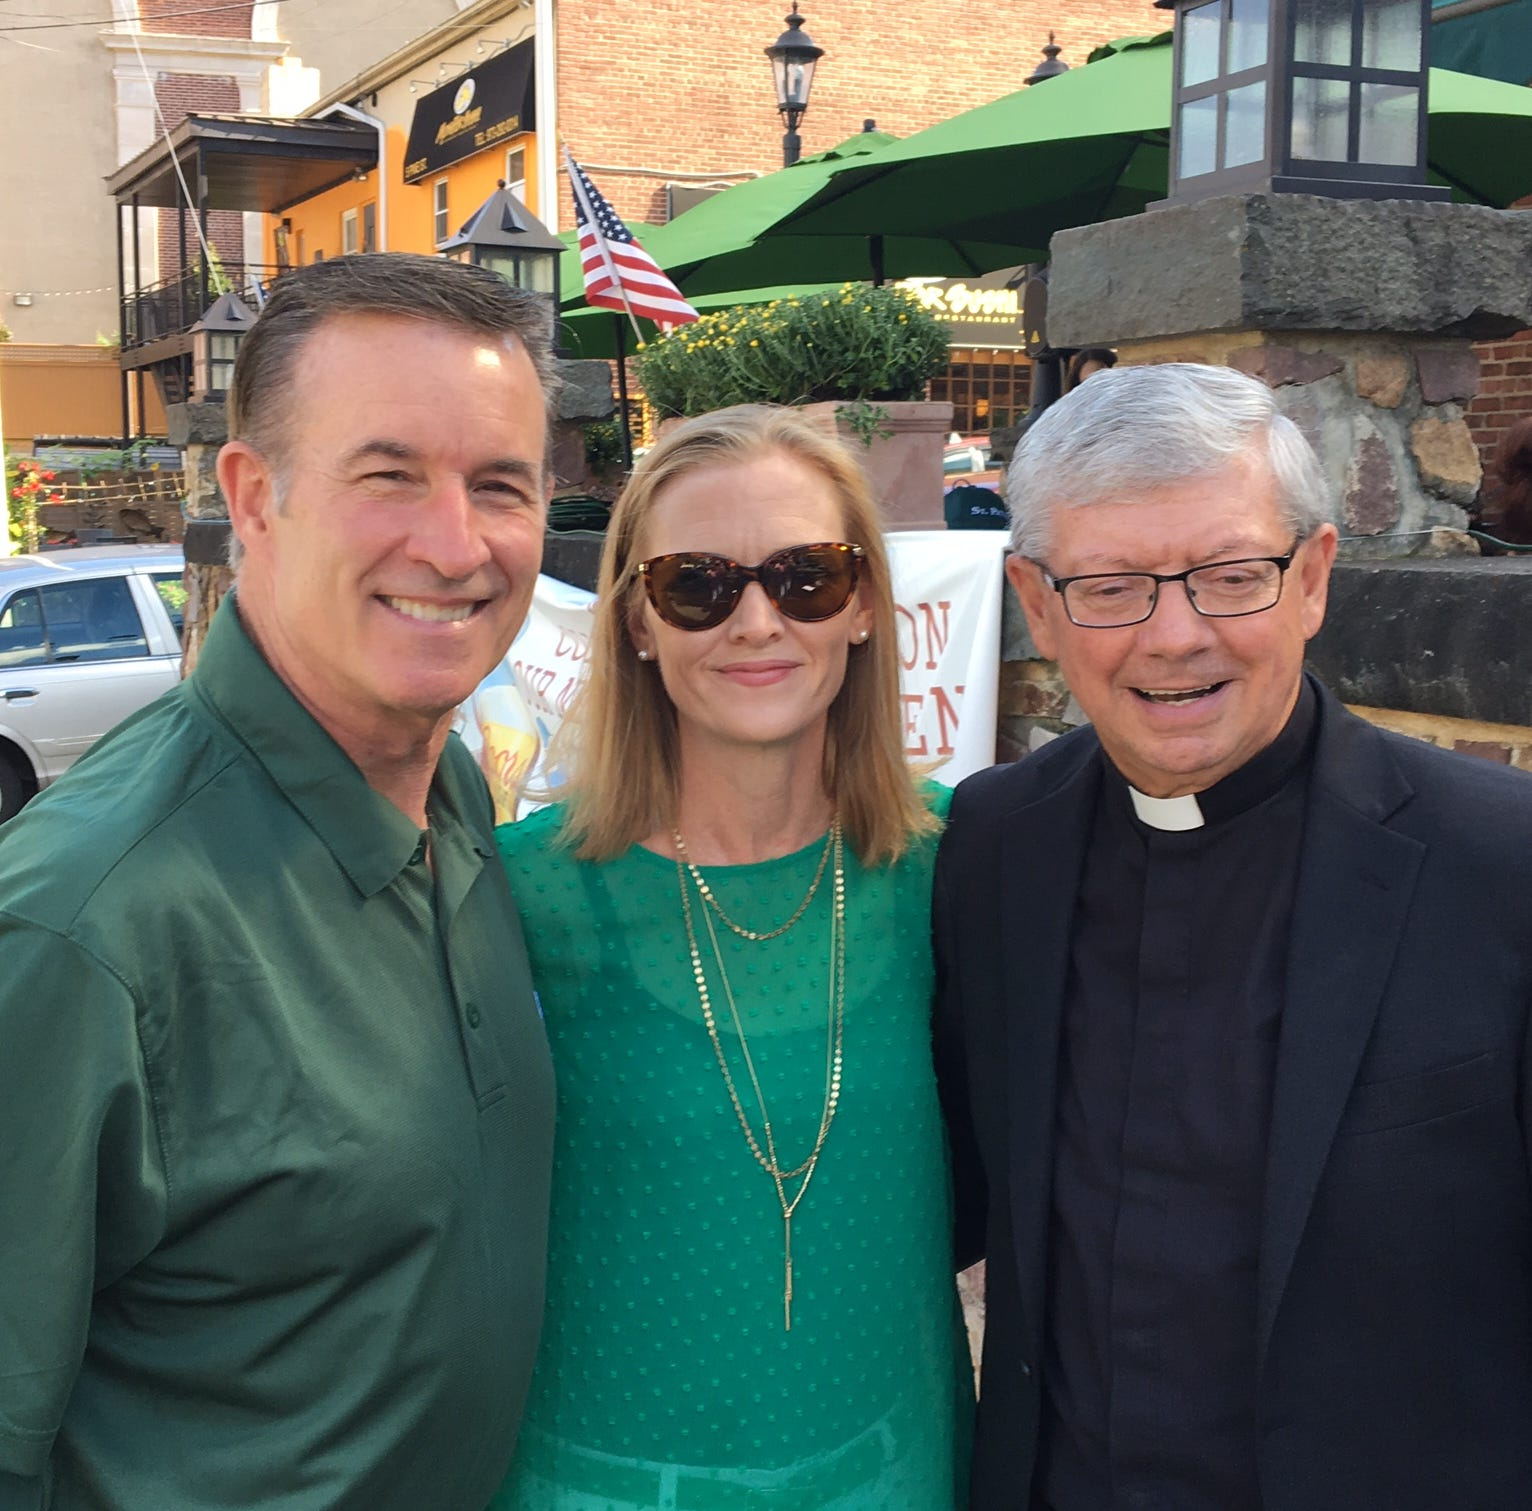 Rev. Paddy O'Donovan will lead Morris County's 2019 St. Patrick's Day parade